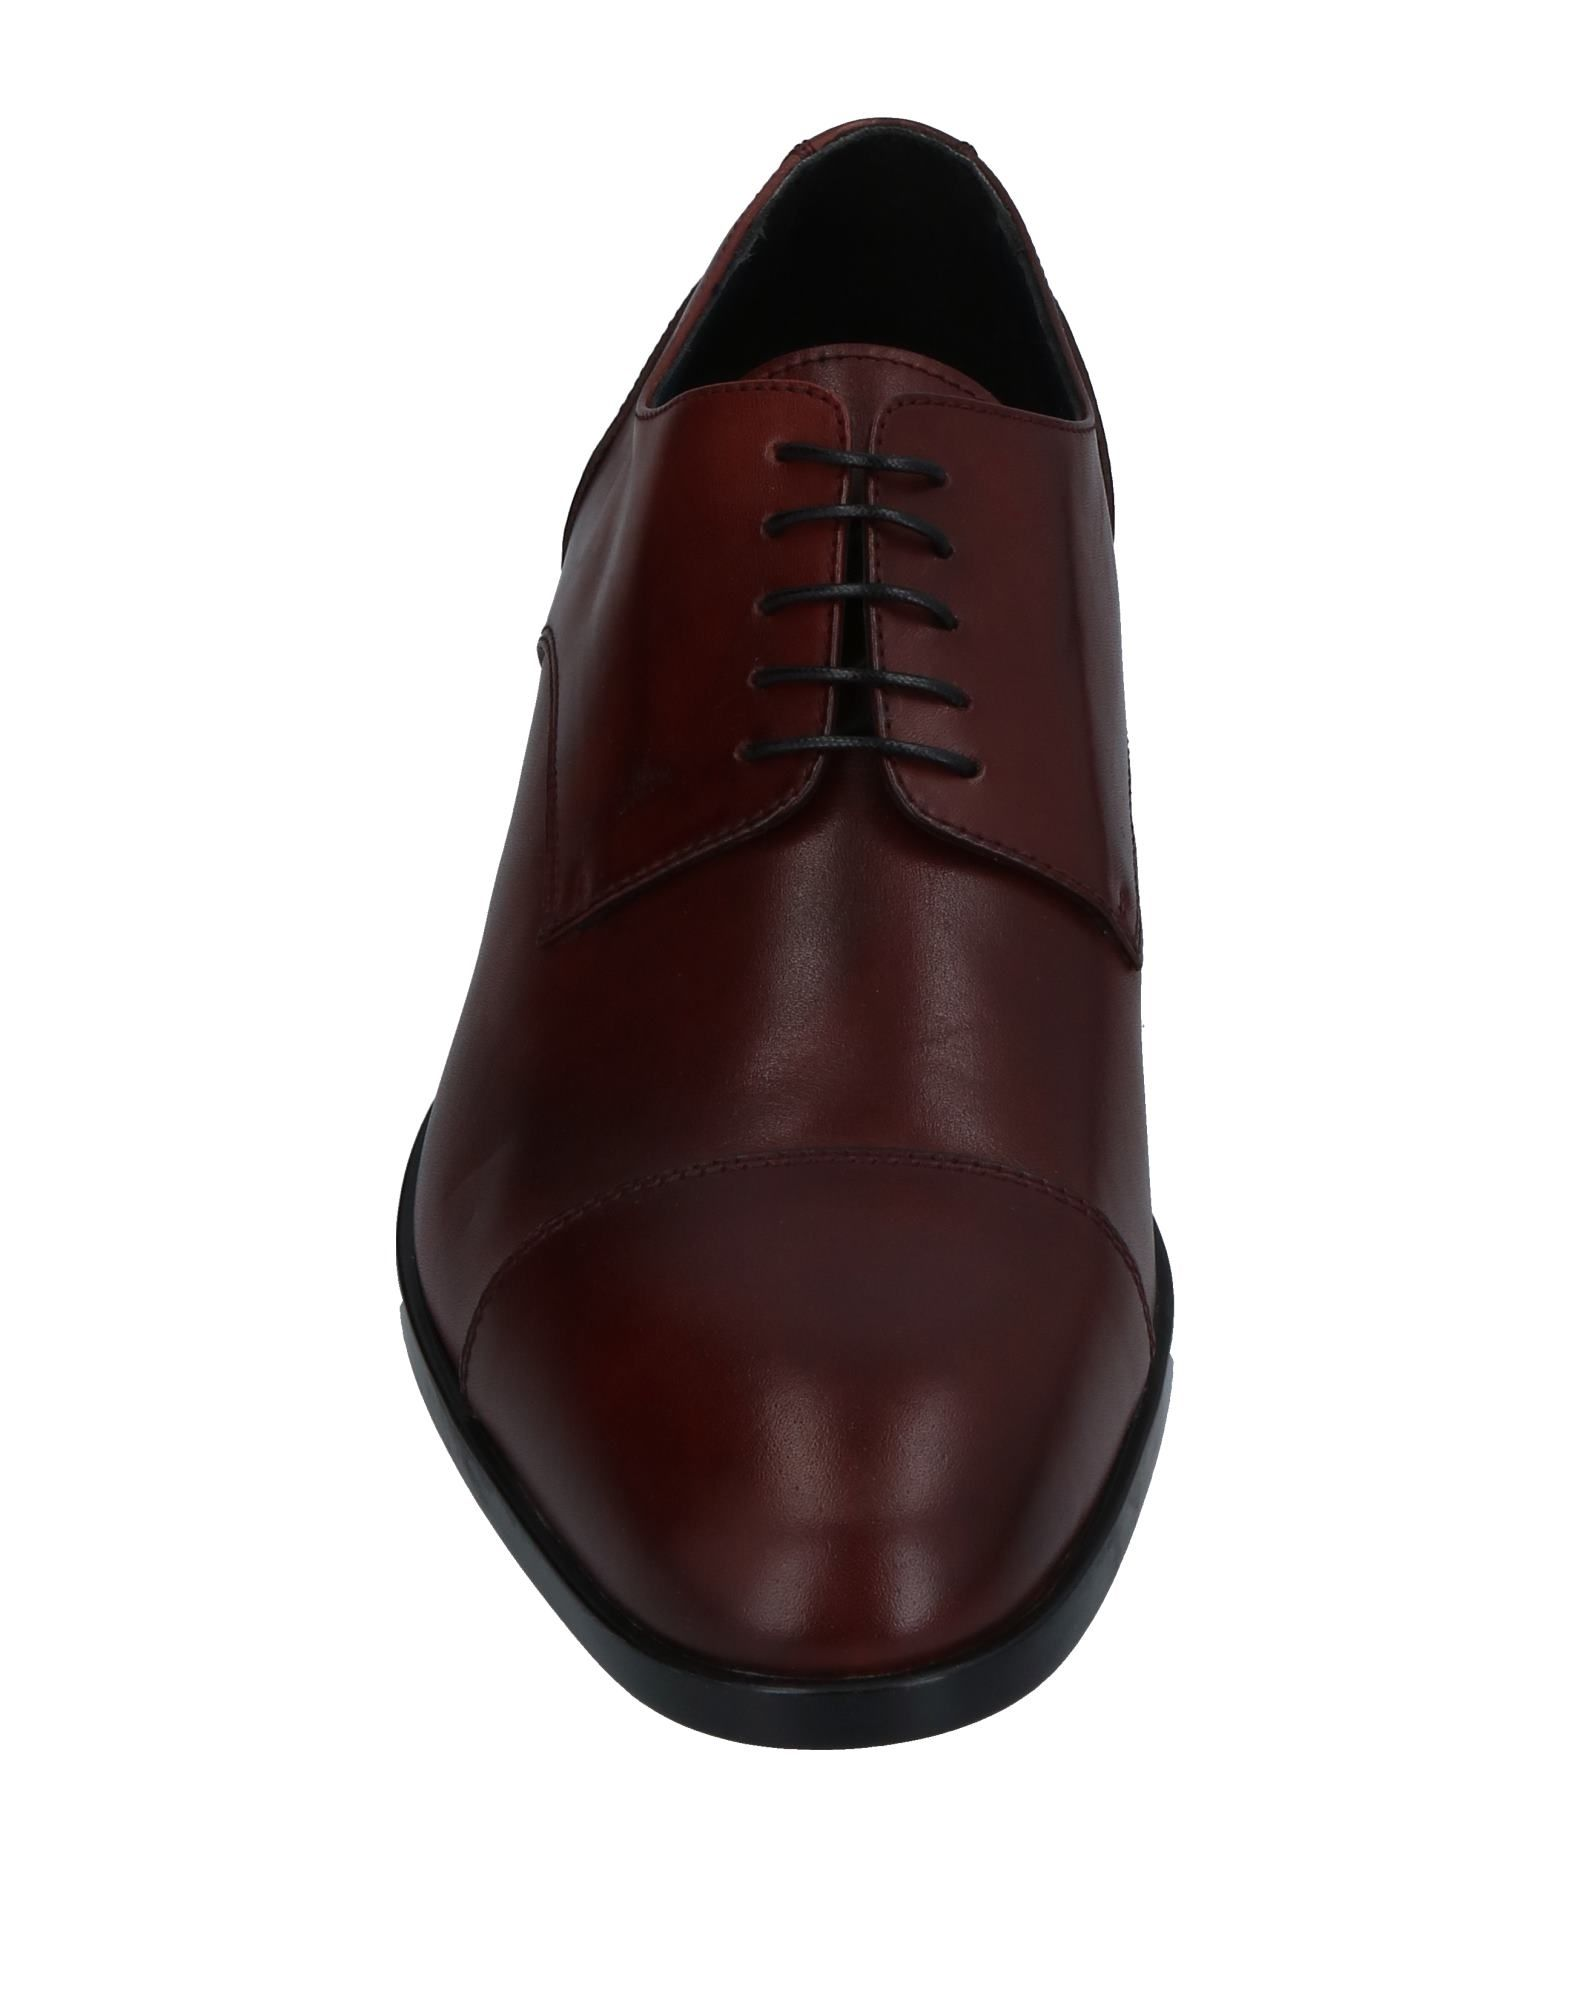 Chaussures À Lacets Fabiano Ricci Homme - Chaussures À Lacets Fabiano Ricci sur